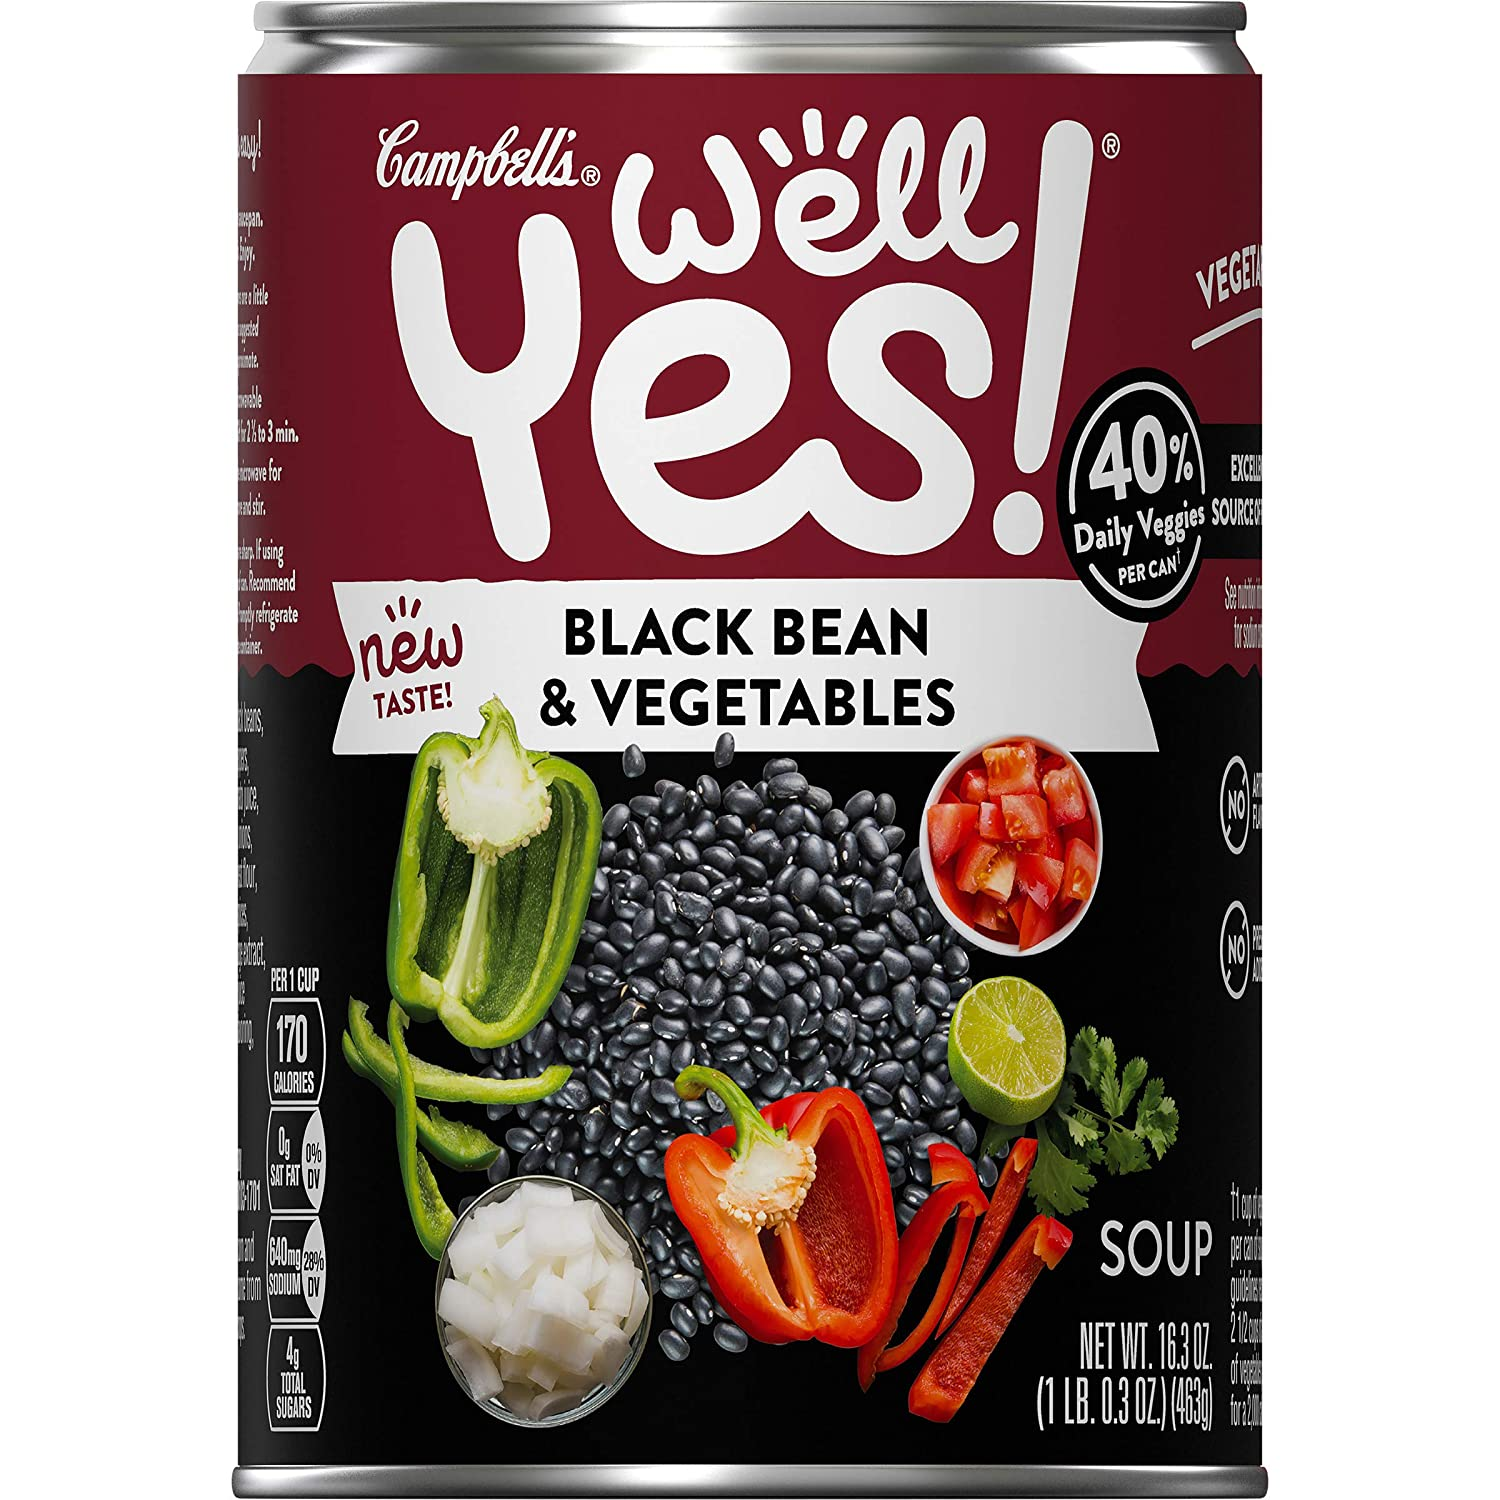 Campbell's Well Yes! Black Bean & Vegetables Soup, Vegetarian Soup, 16.3 Ounce Can (Pack of 12)